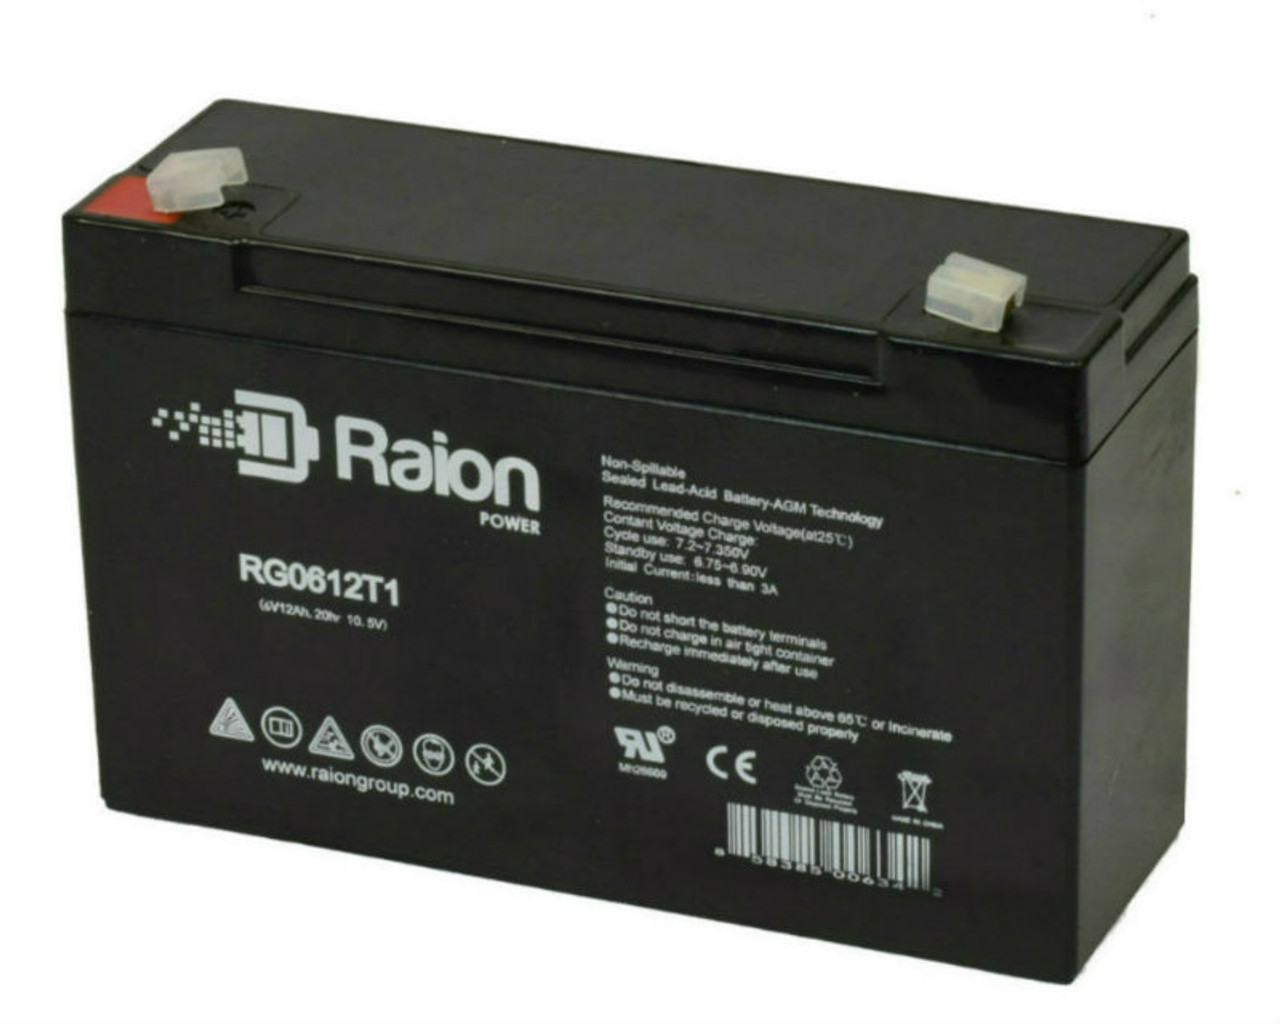 Raion Power RG06120T1 Replacement Battery Pack for Mule C2 emergency light